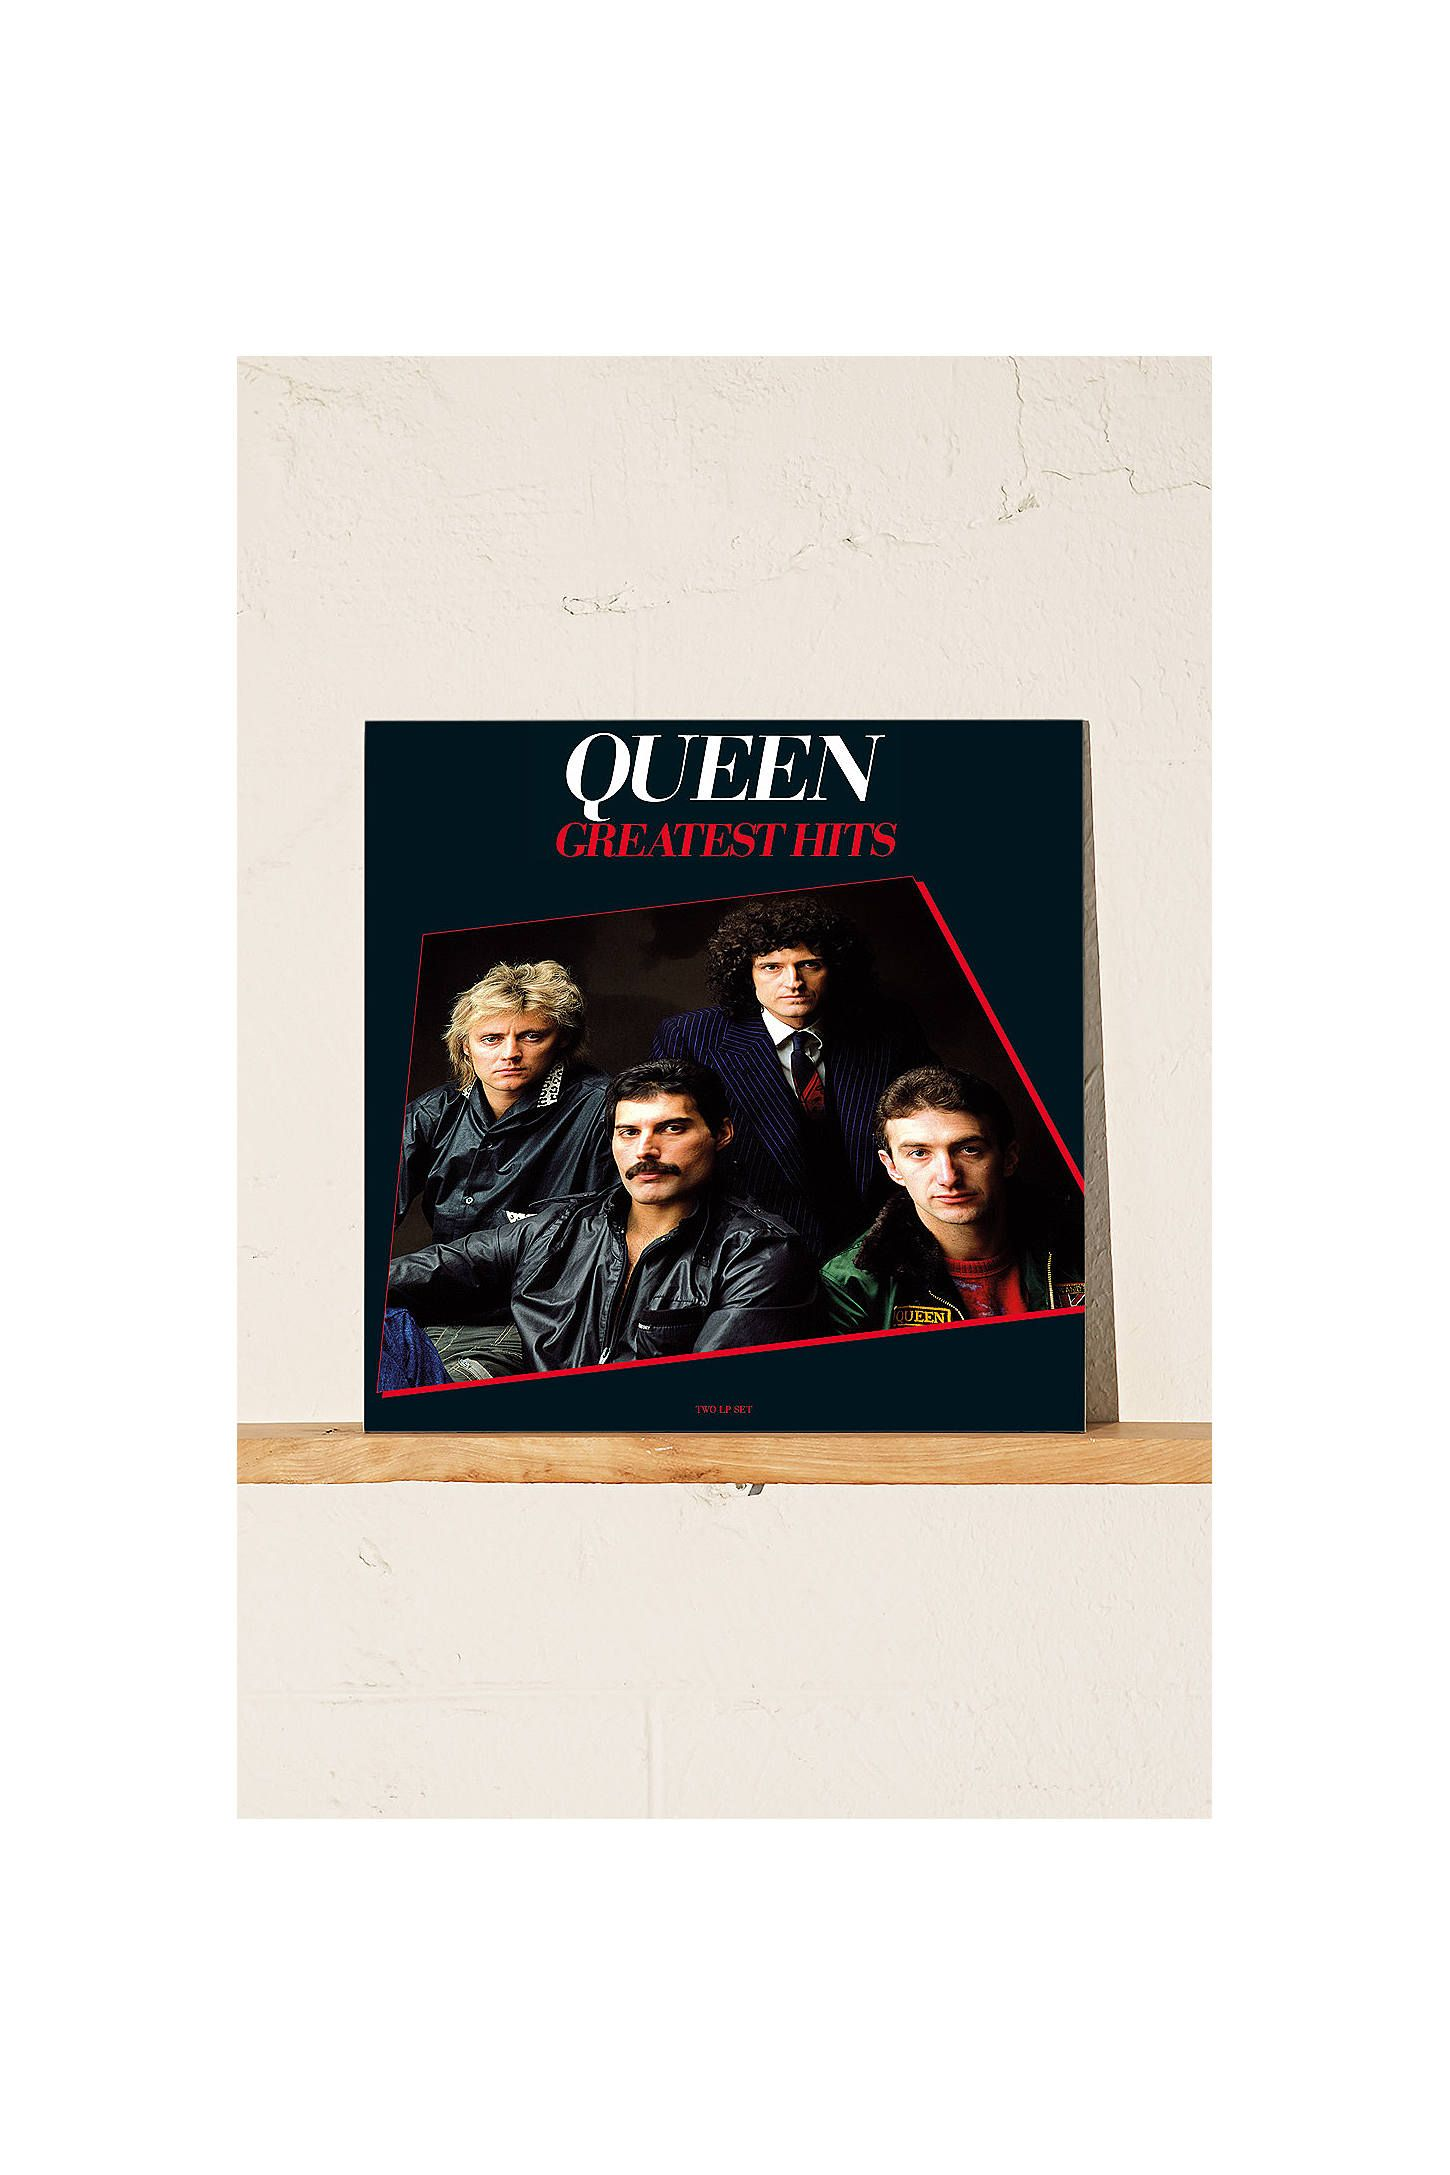 Queen Greatest Hits LP Greatest hits, Somebody to love